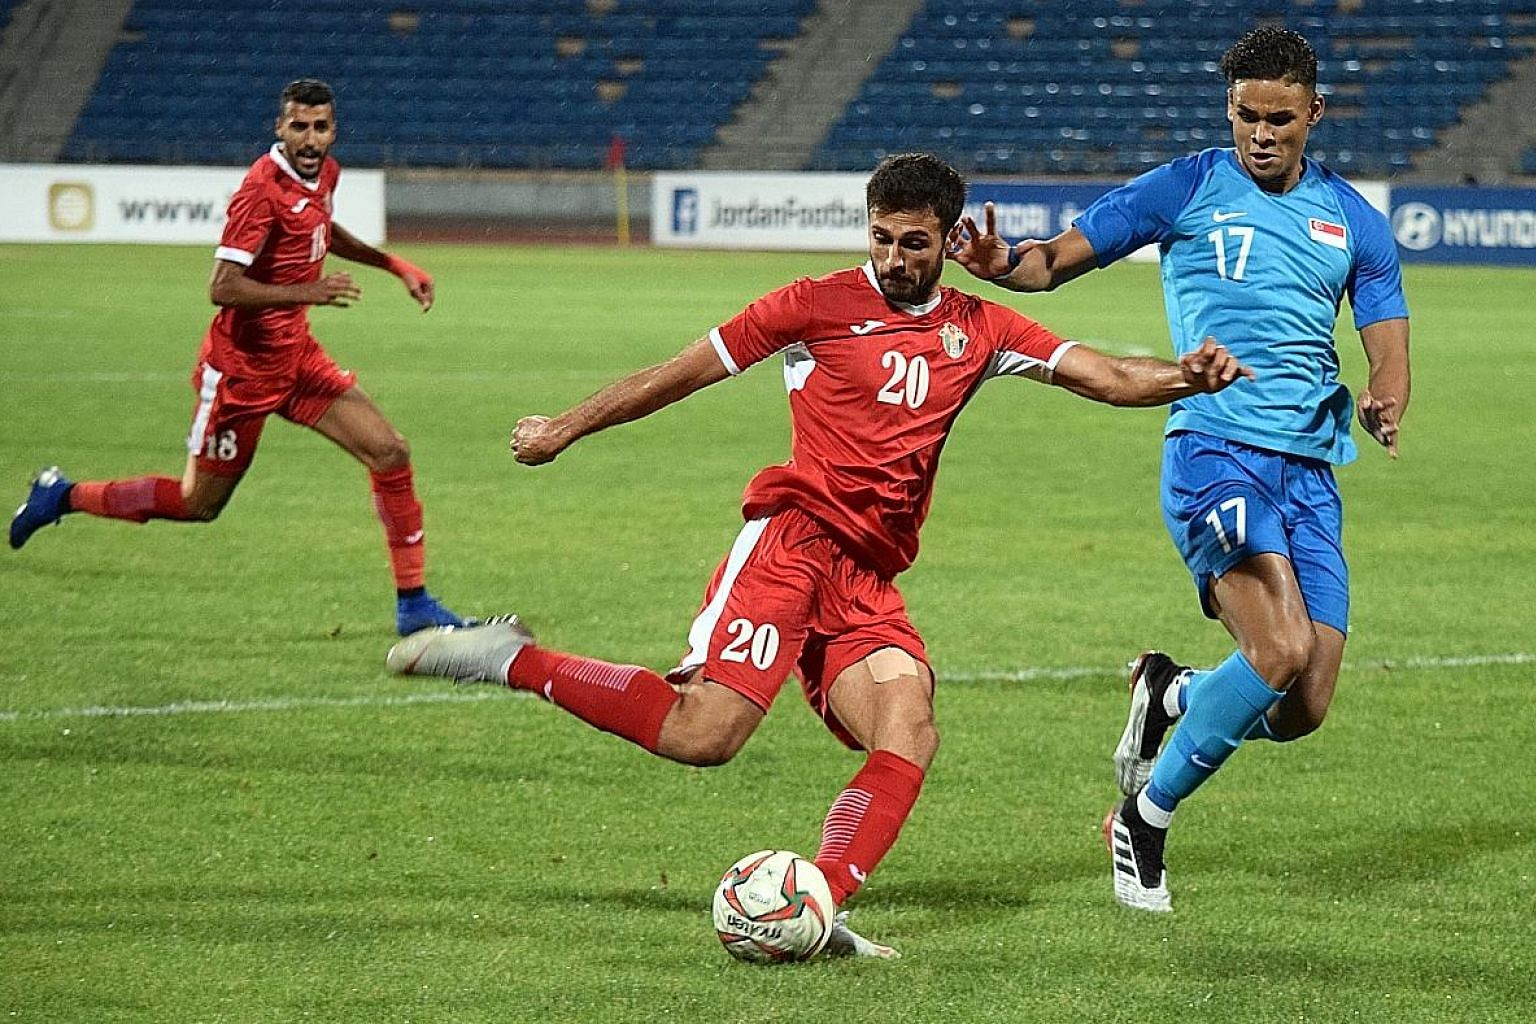 Singapore defender Irfan Fandi shadowing Jordan attacker Abdullah Al-Attar in Saturday's international friendly in Amman that ended 0-0. Saudi Arabia will surely provide much stiffer opposition in their World Cup qualifier on Thursday.